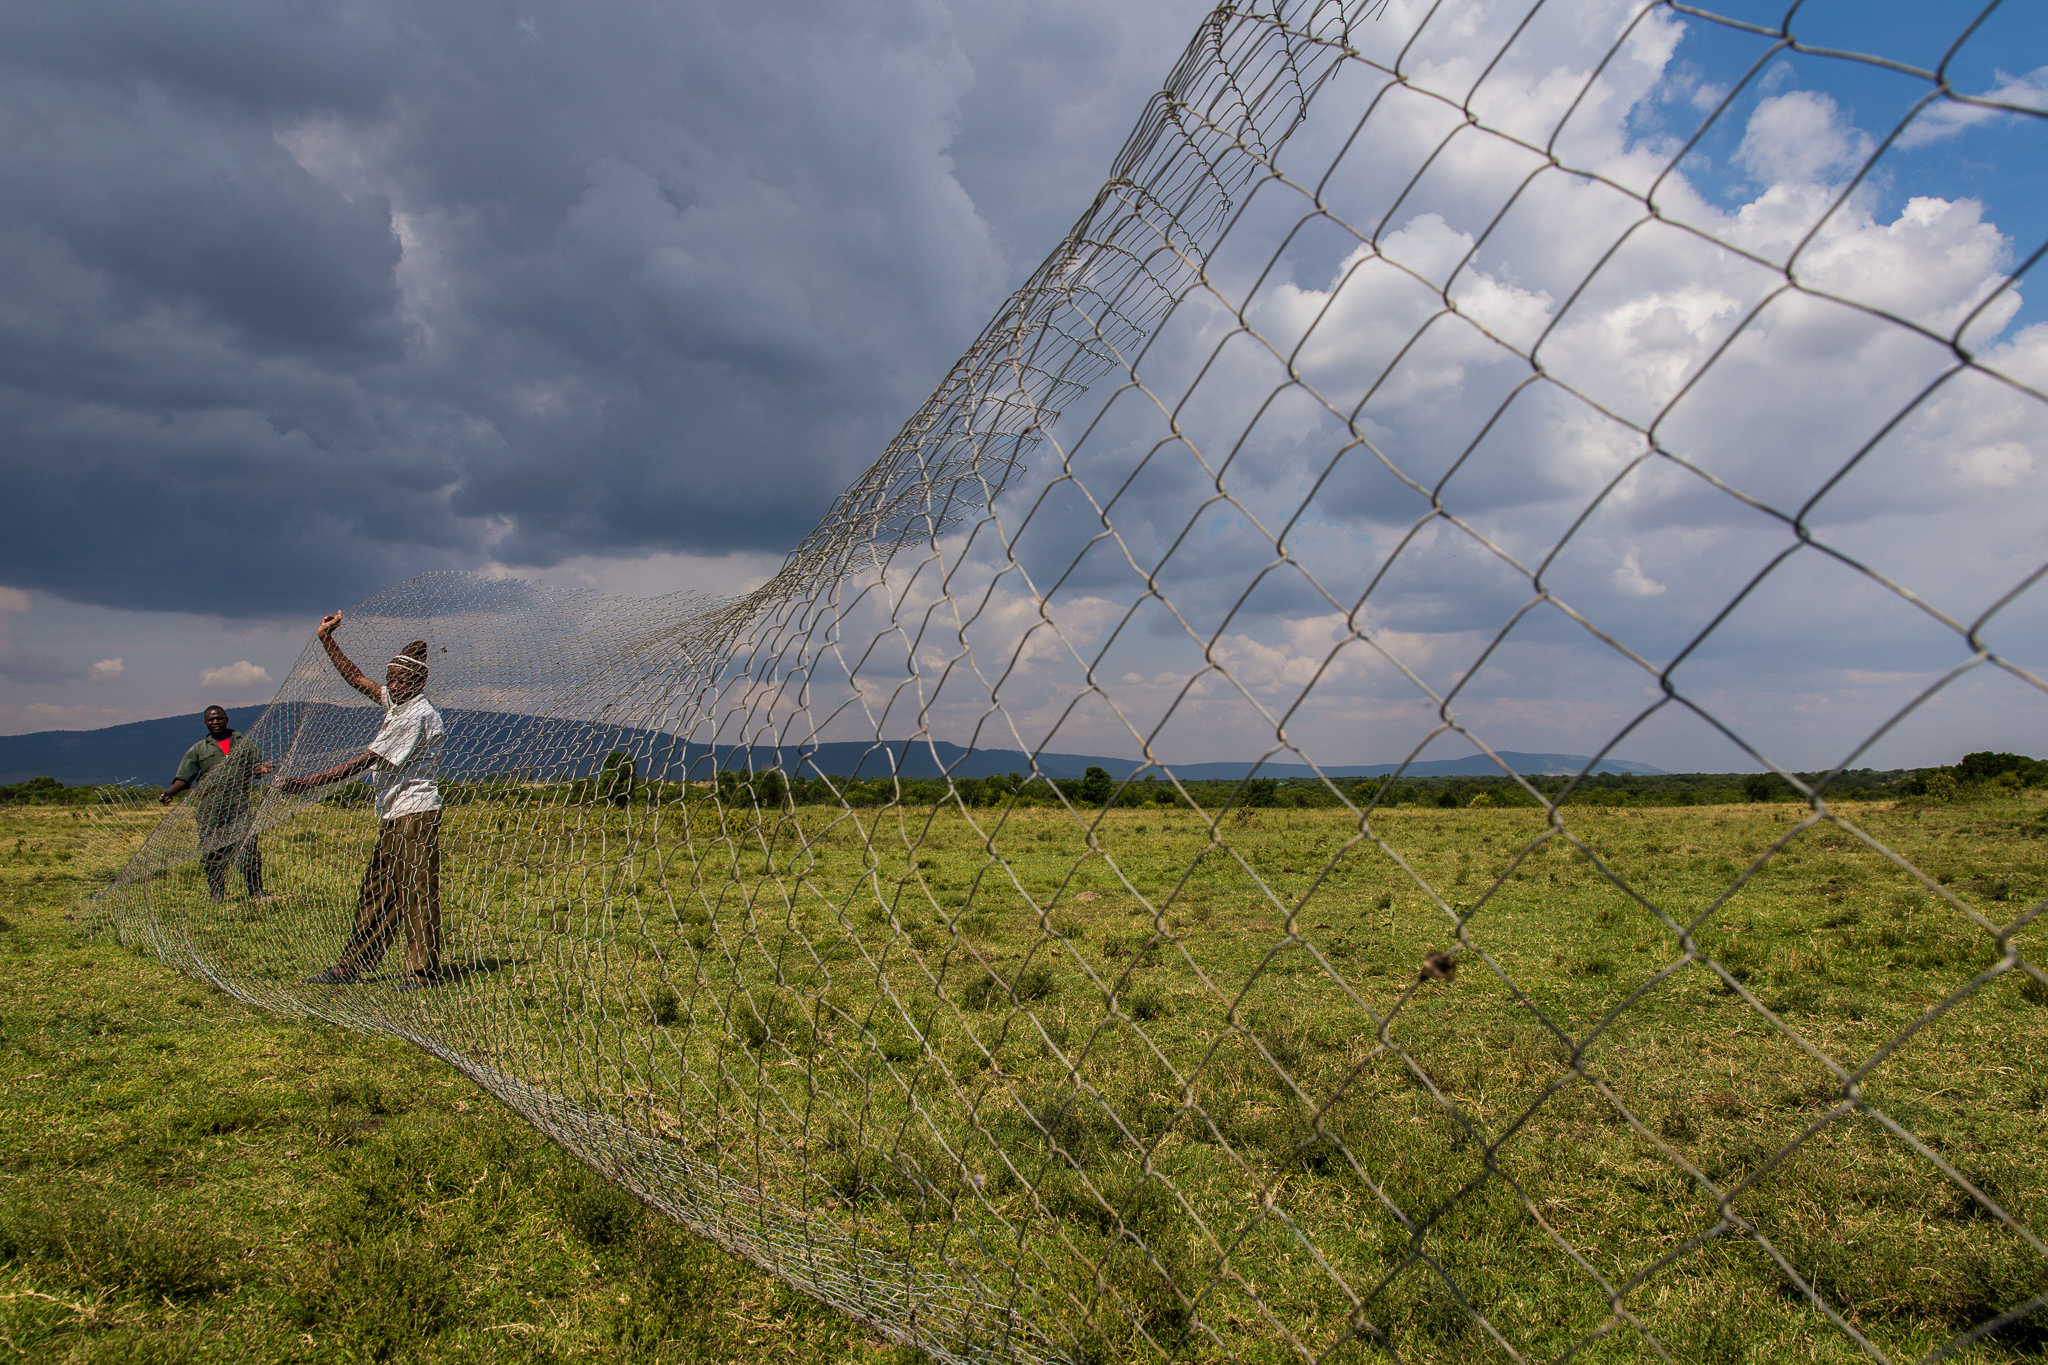 Workers stretch out the chain-link fencing for Pilot's new <em>boma</em>. The construction process typically takes two days, one for setting the posts in cement, and another for attaching the fencing.